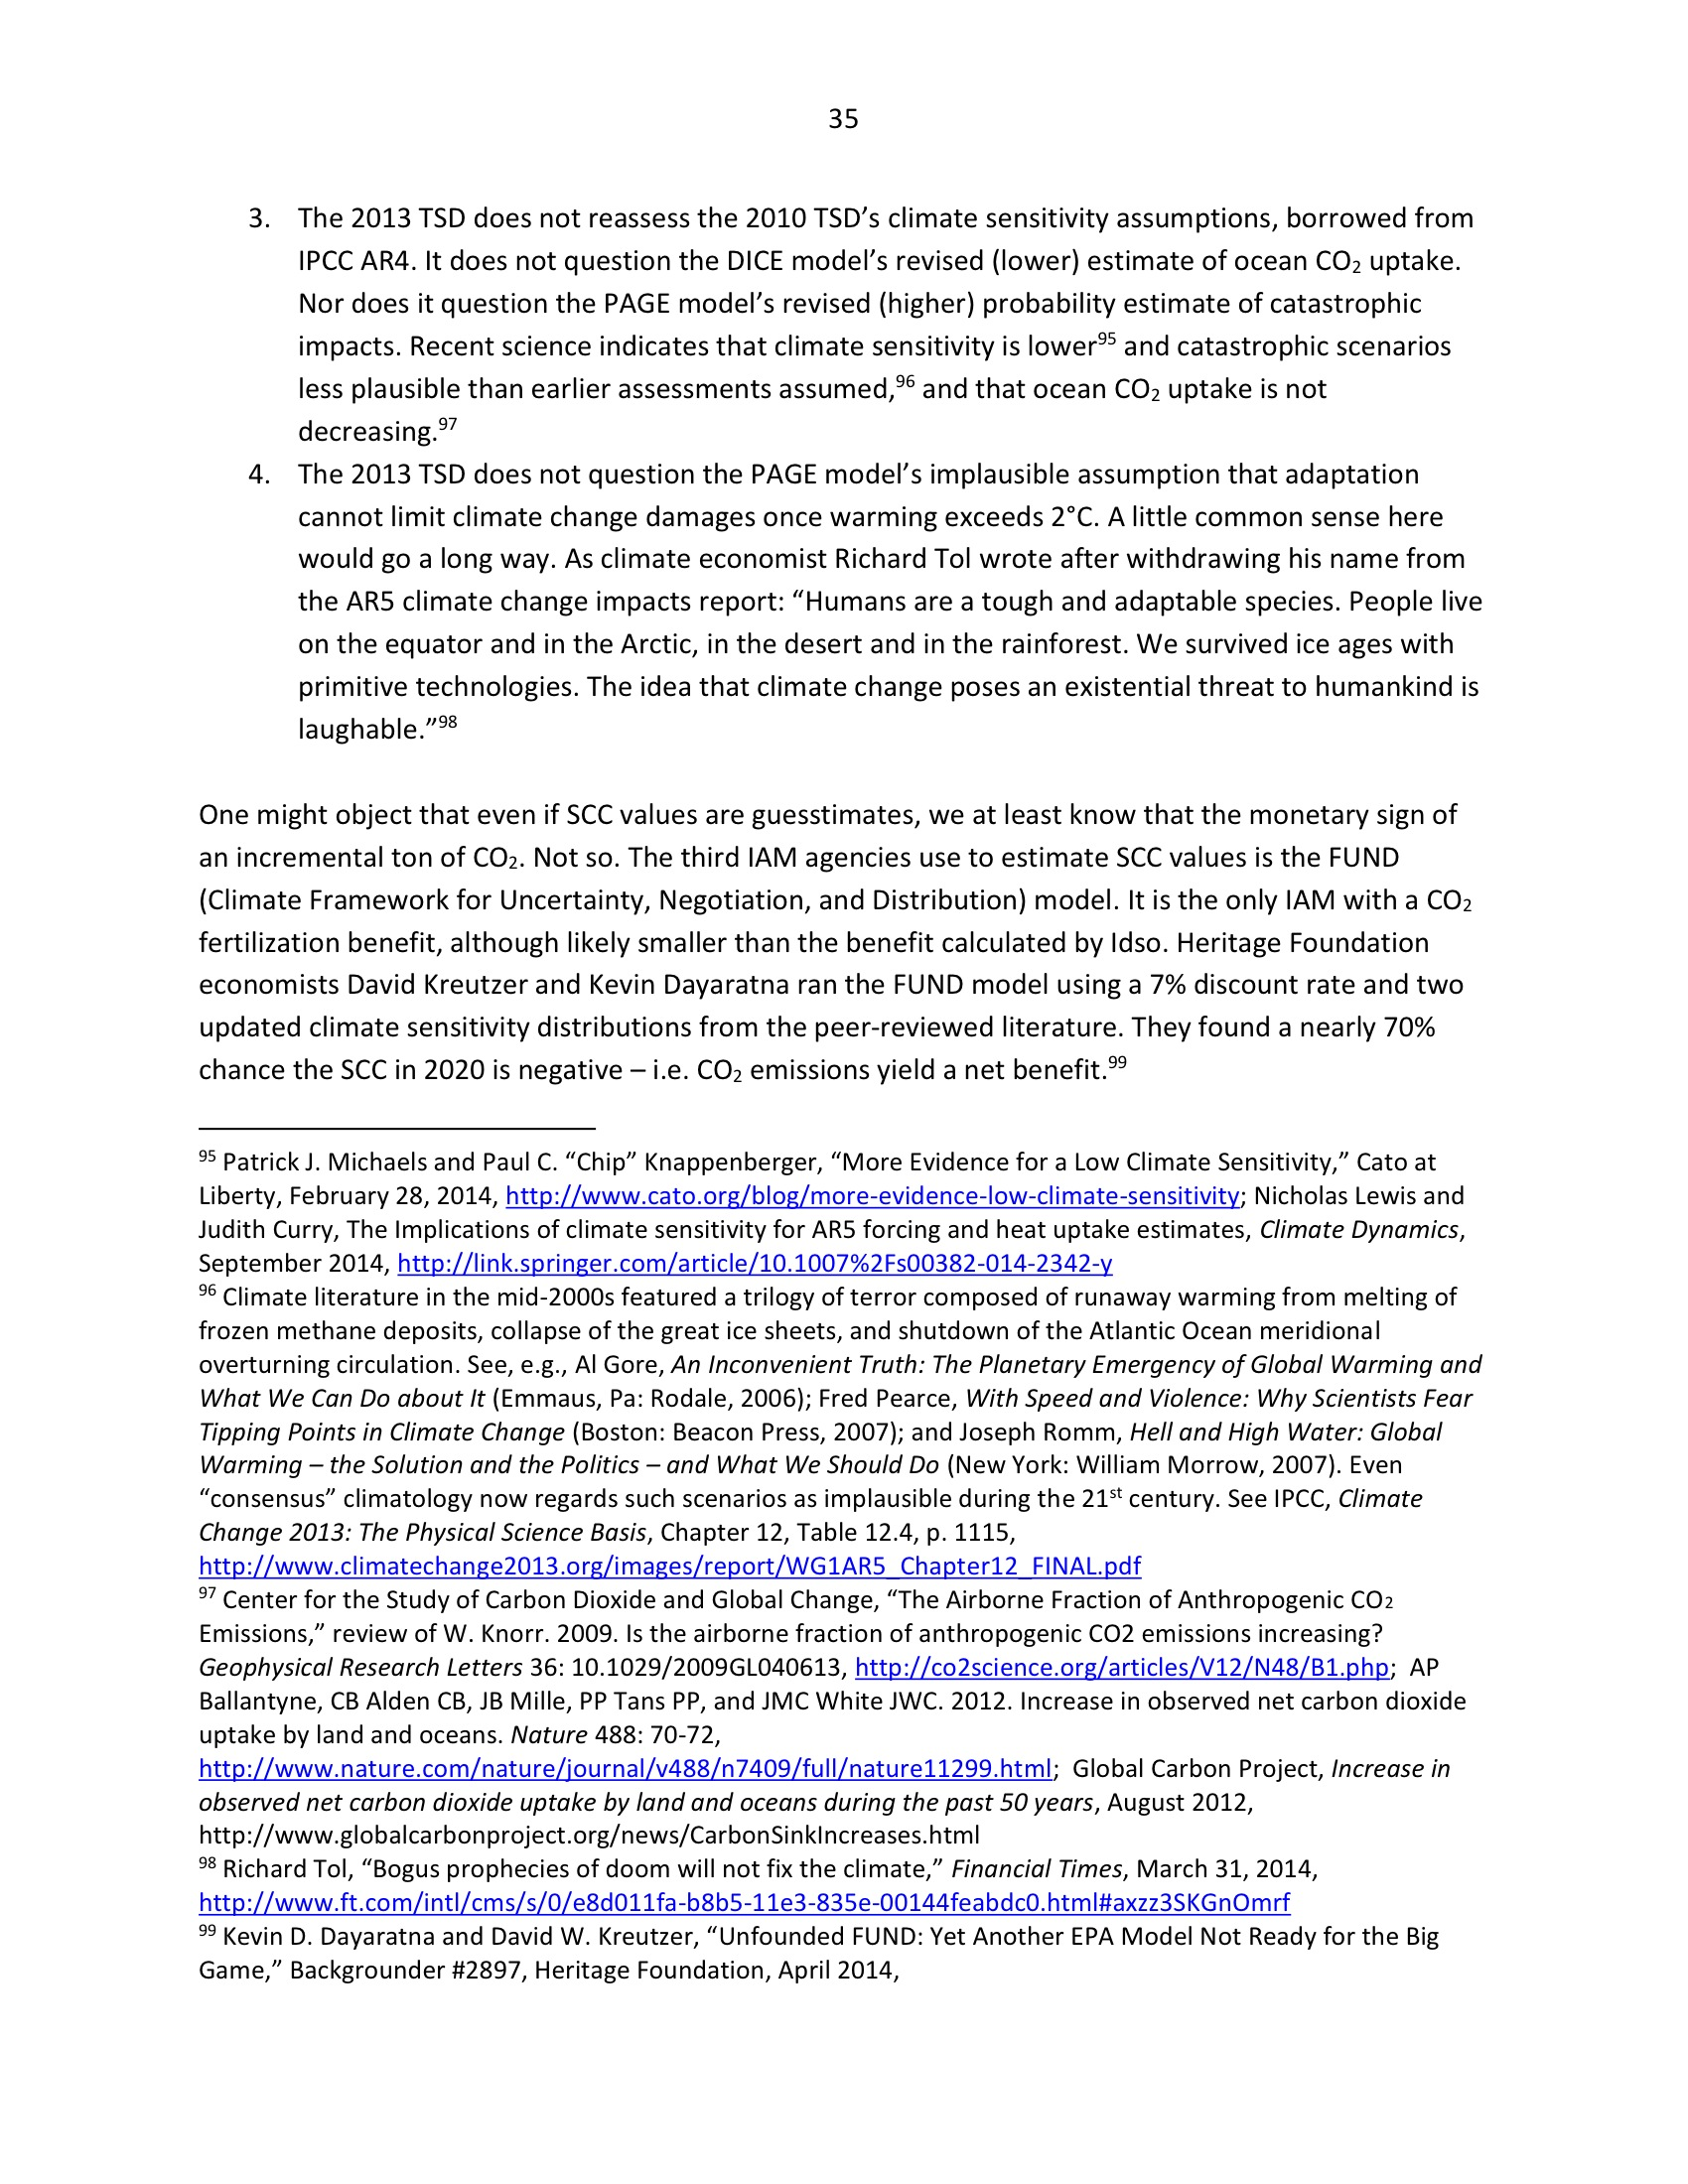 Marlo Lewis Competitive Enterprise Institute and Free Market Allies Comment Letter on NEPA GHG Guidance Document 107-35